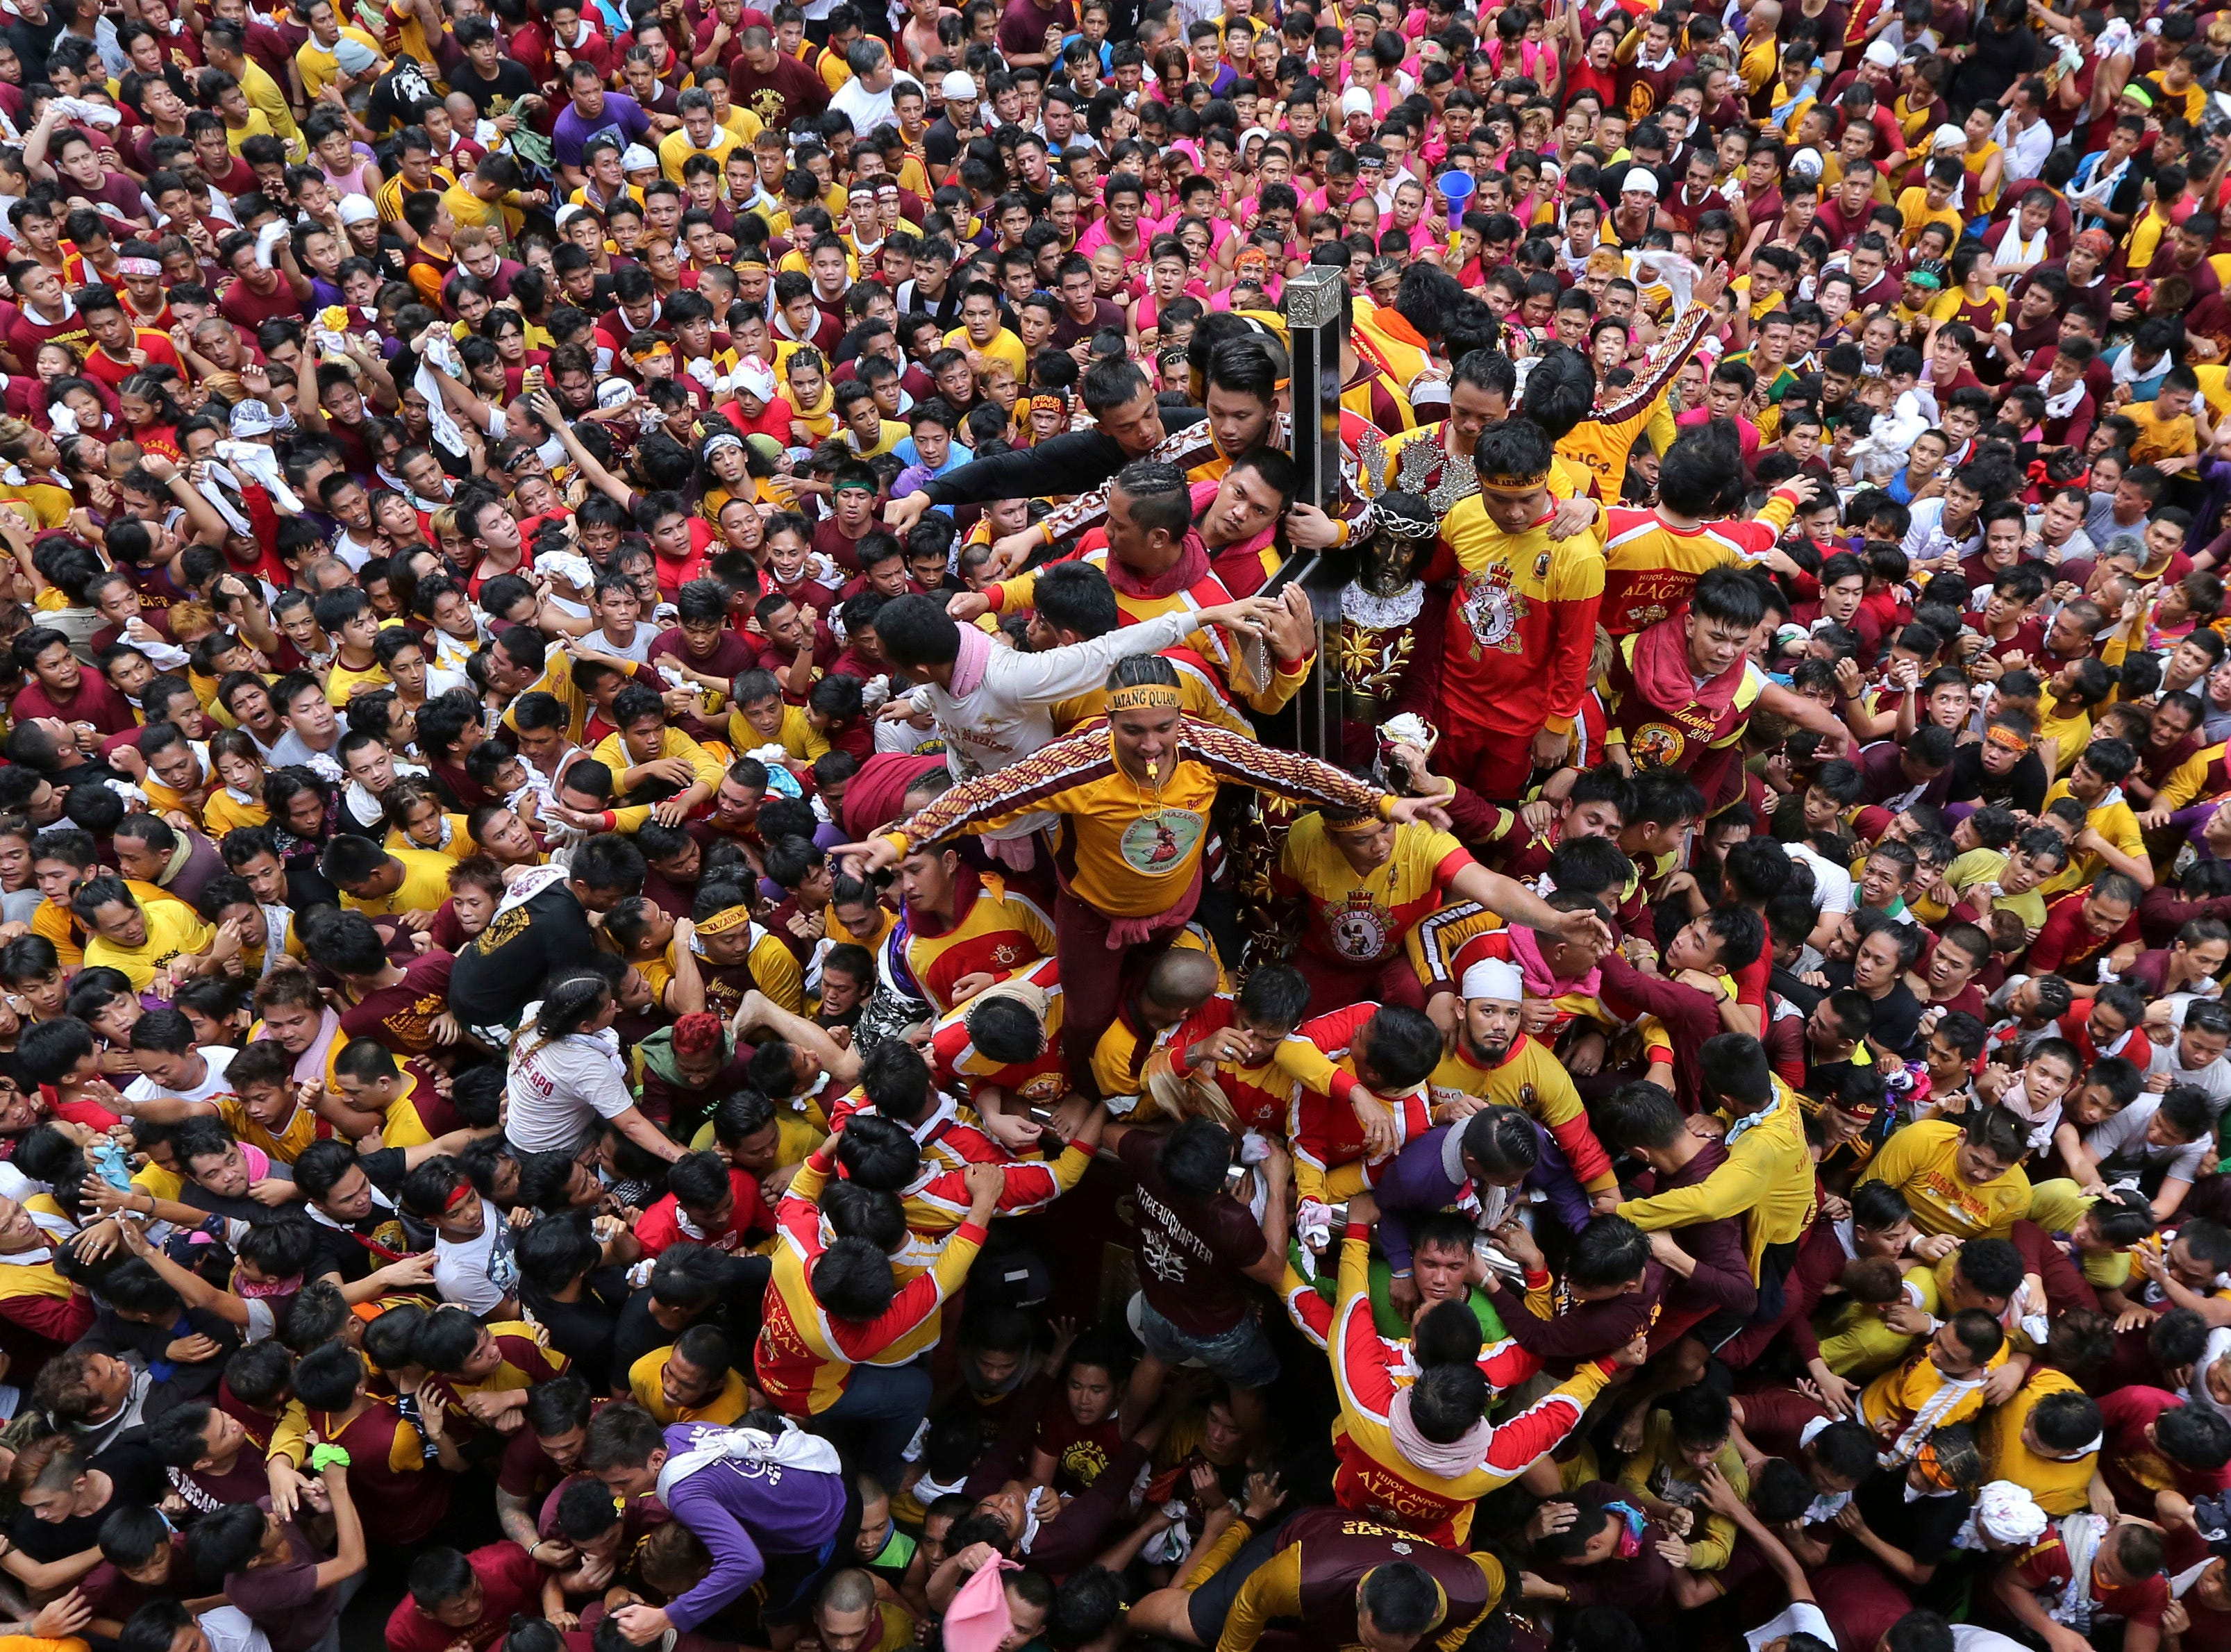 Jan. 9, 2018: Roman Catholic devotees jostle for position as they try to get near the image of the Black Nazarene during a raucous procession to celebrate it's feast day in Manila, Philippines.